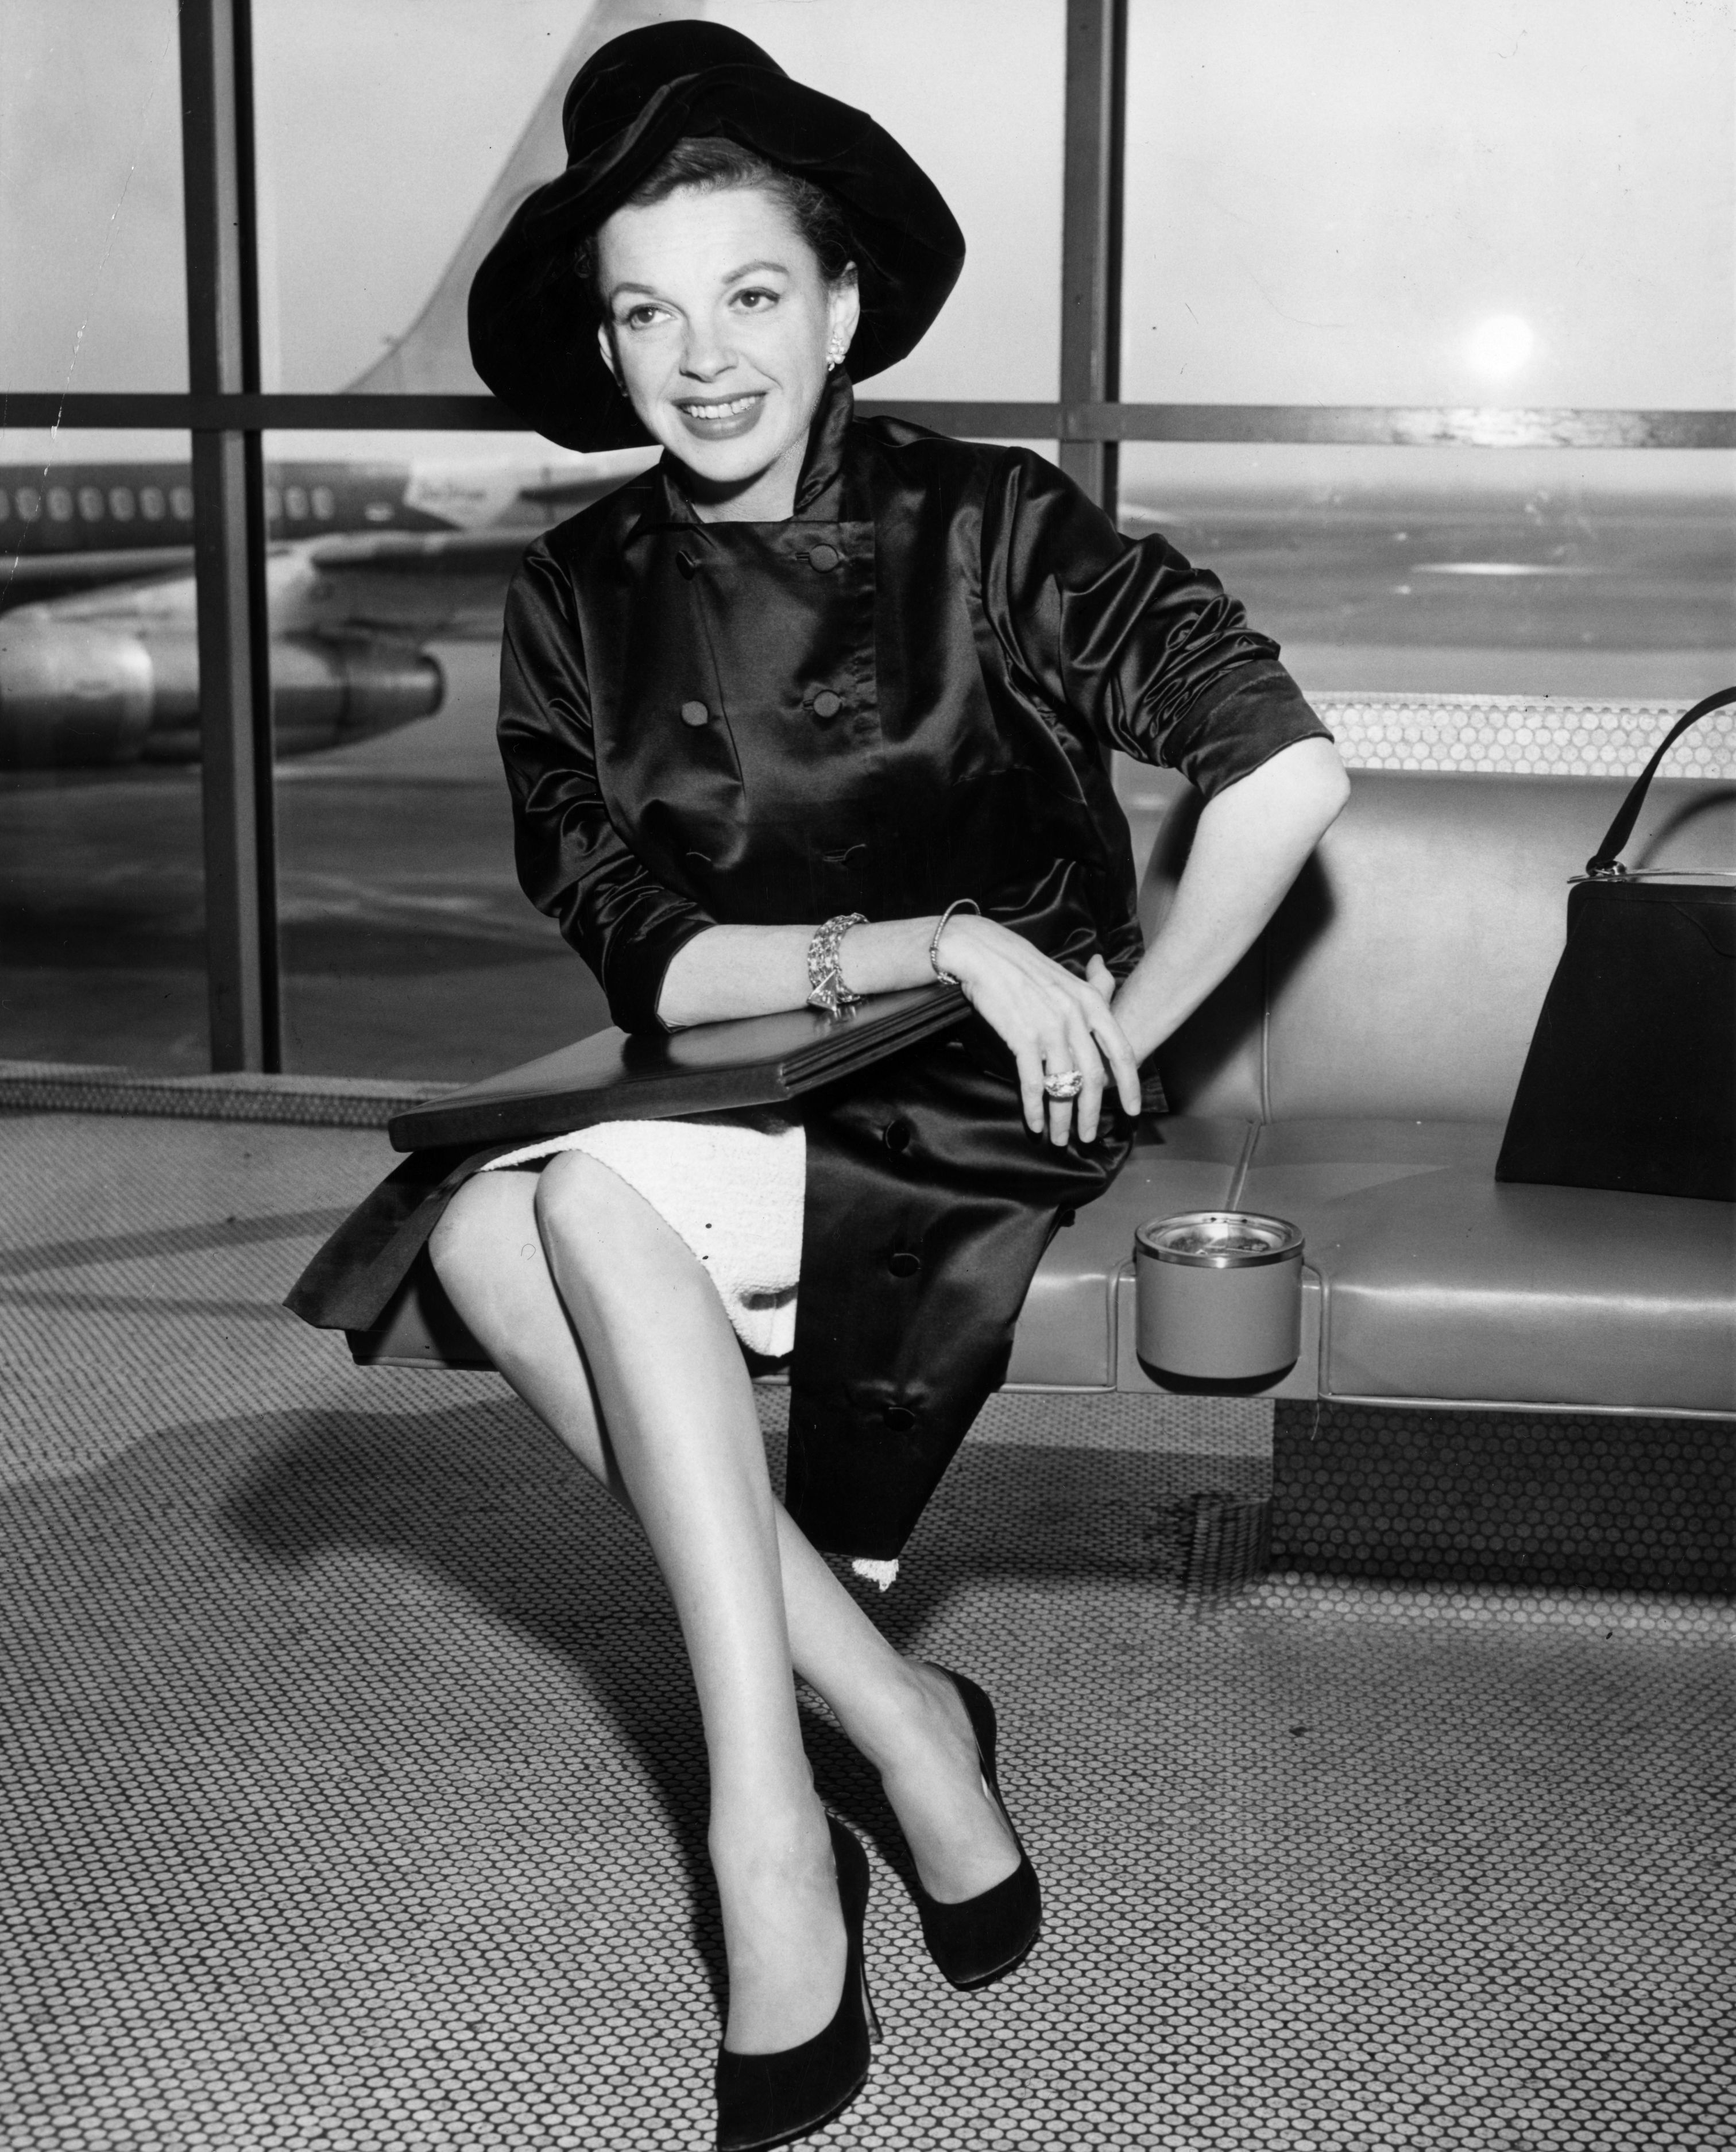 Singer and film star Judy Garland at an airport on January 01, 1955 | Photo: Getty Images